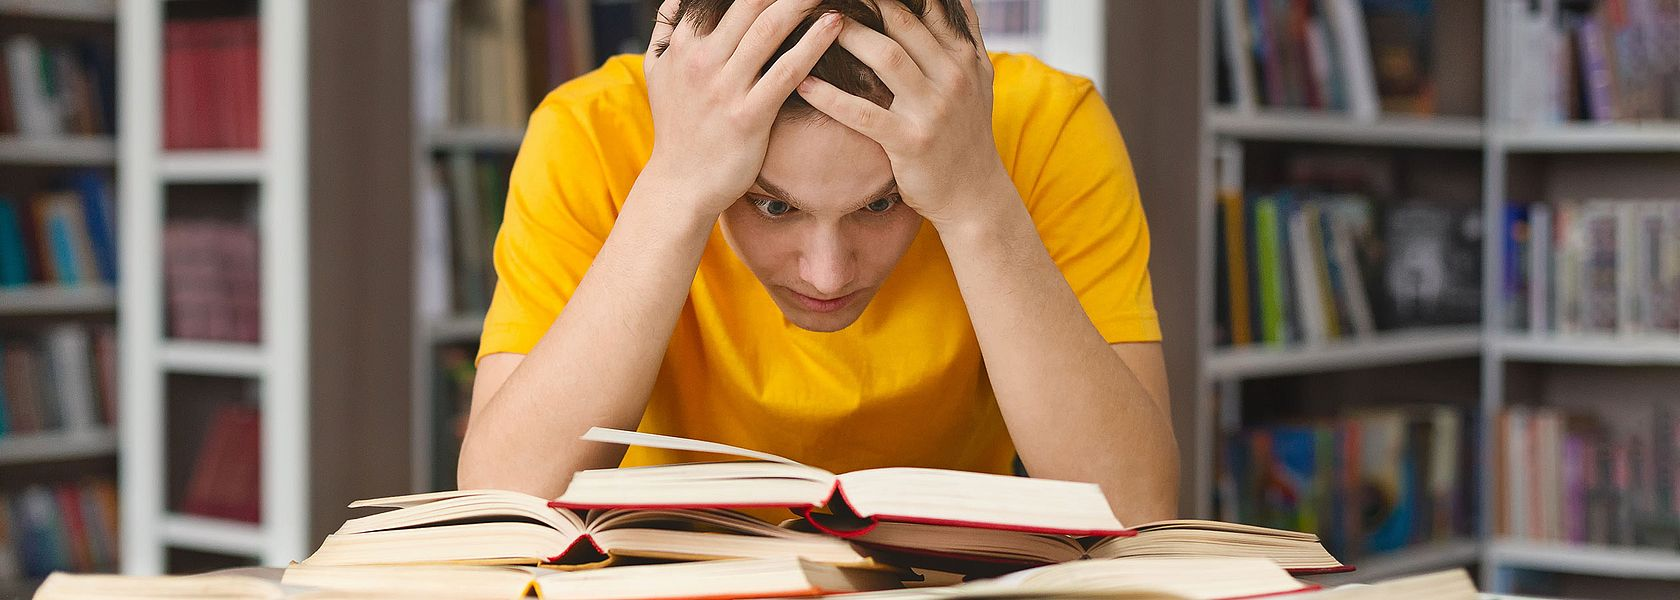 Boy with a yellow shirt leans over some books and looks desperate.